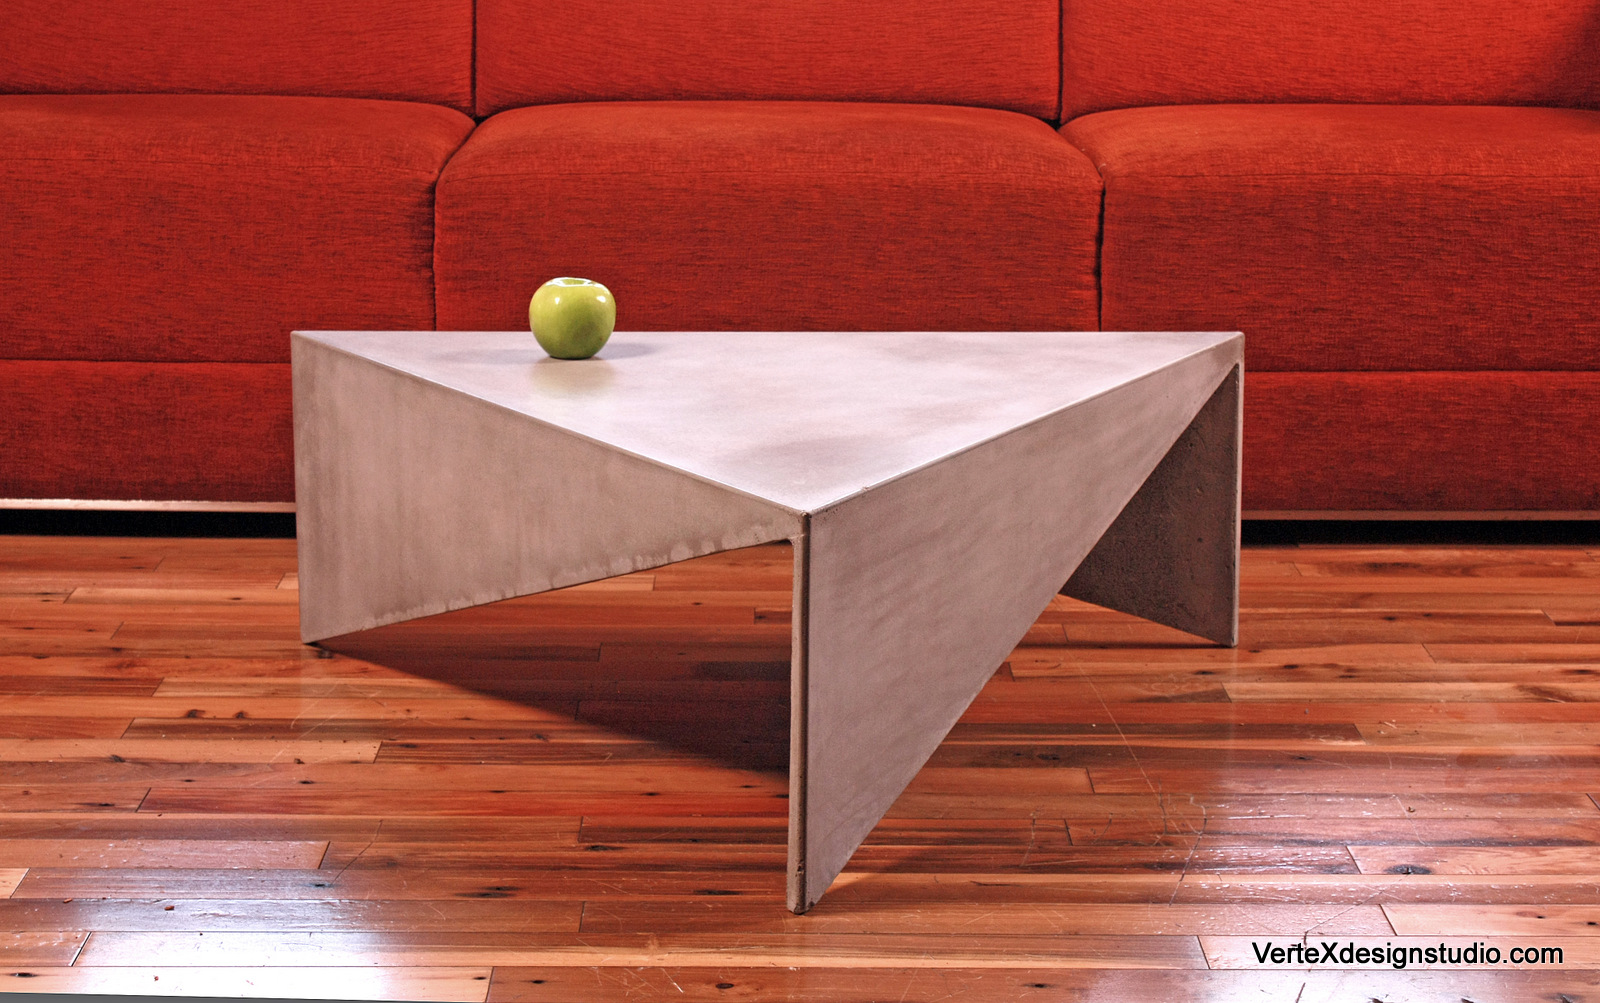 Triangular Table Plans Concrete Triangle Coffee Table